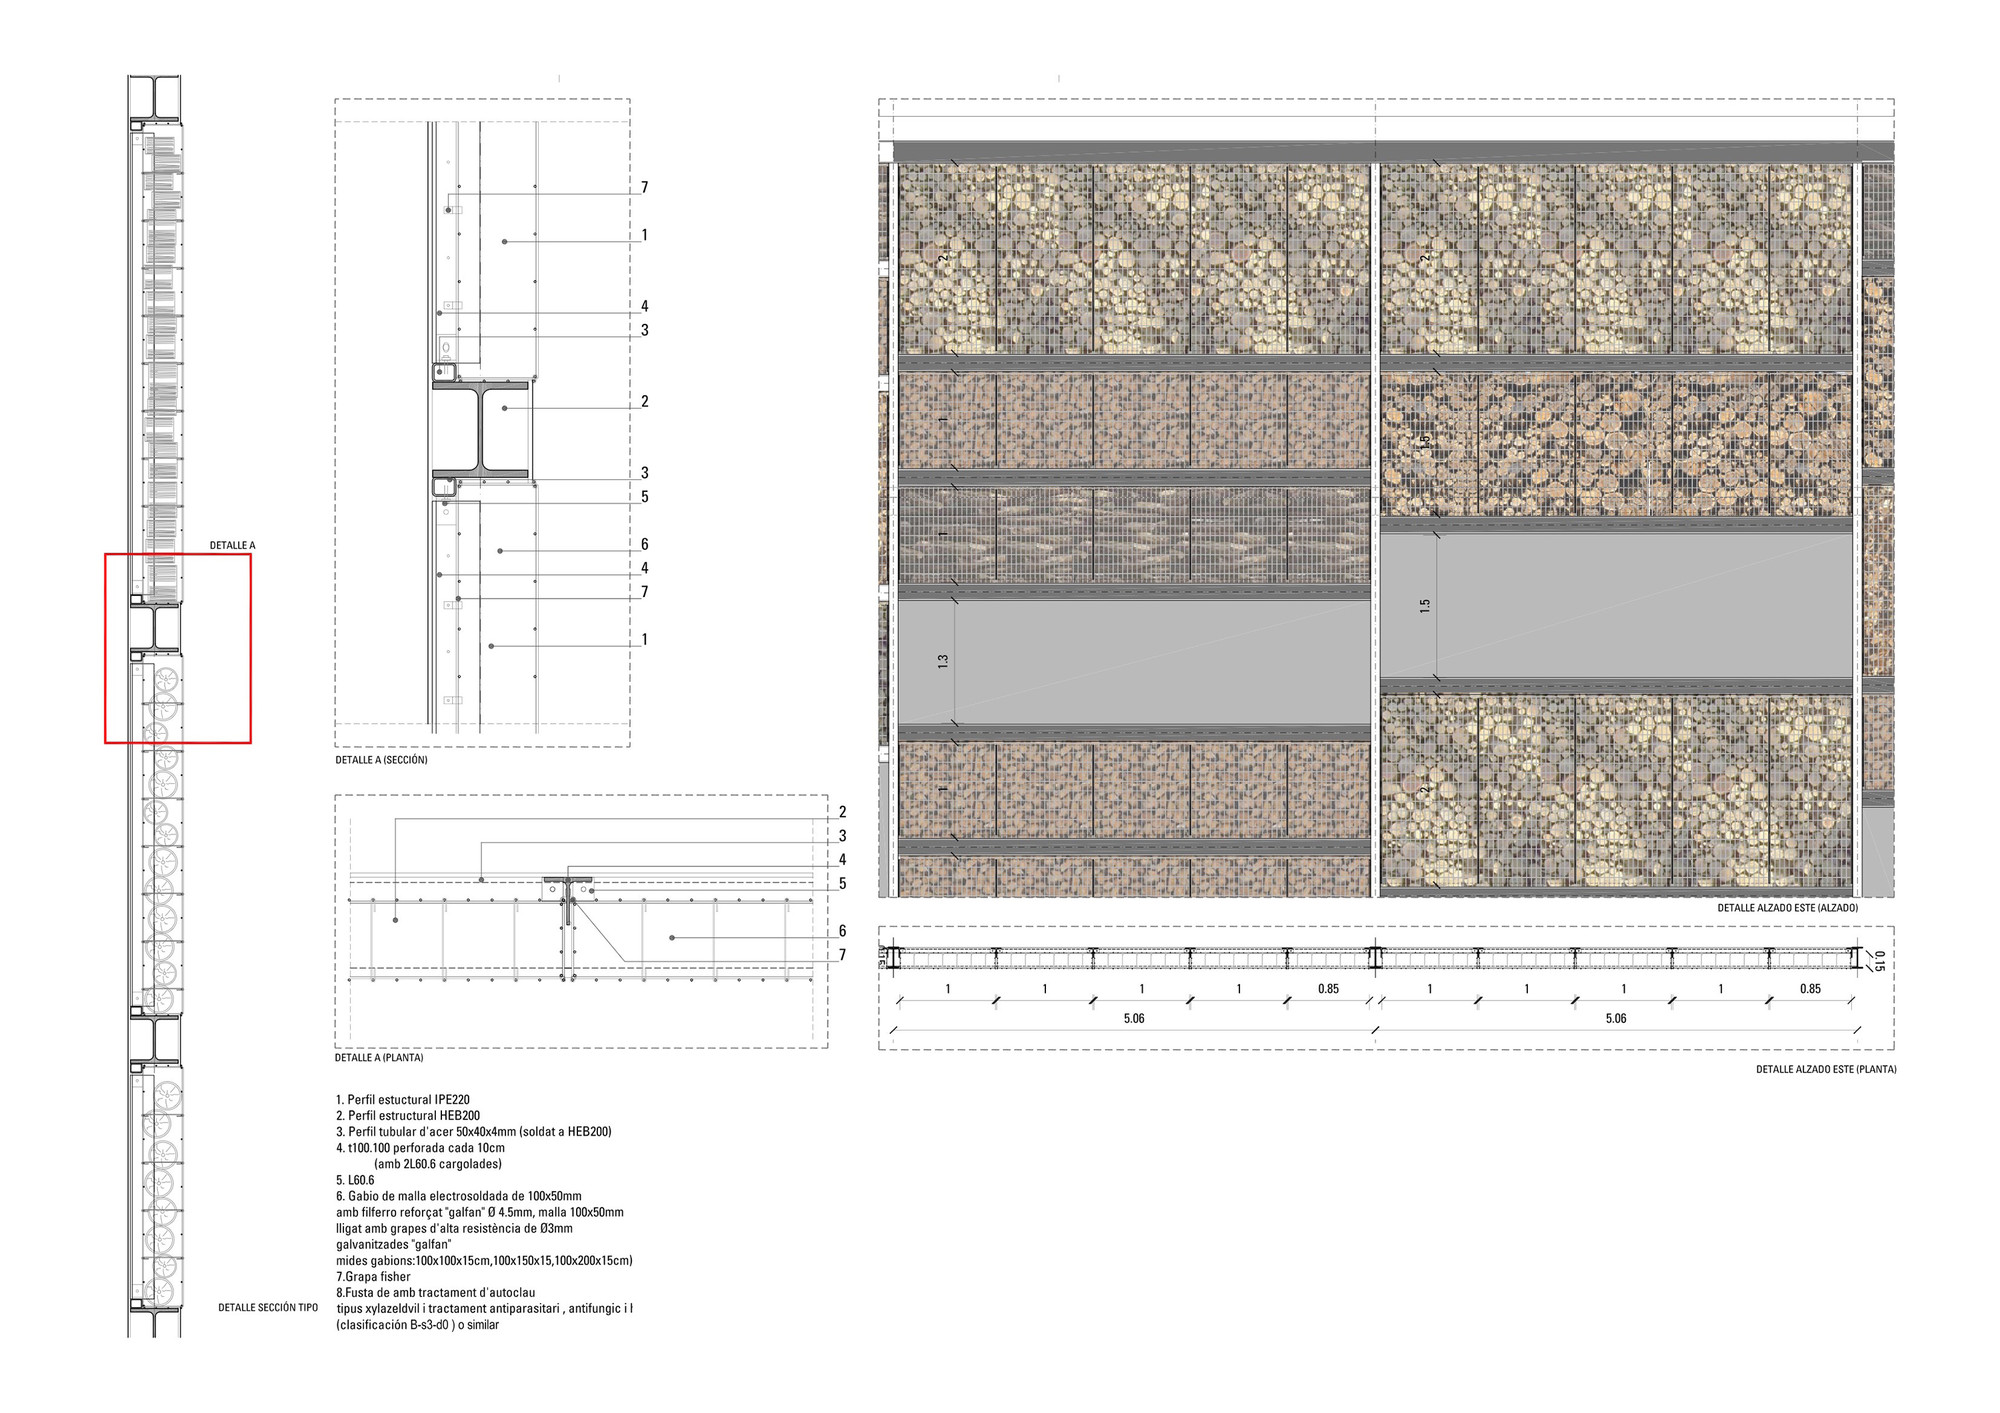 Barcelona Sur Power Generation Plant Forgas Arquitectes Archdaily Diagram Of Detail 2